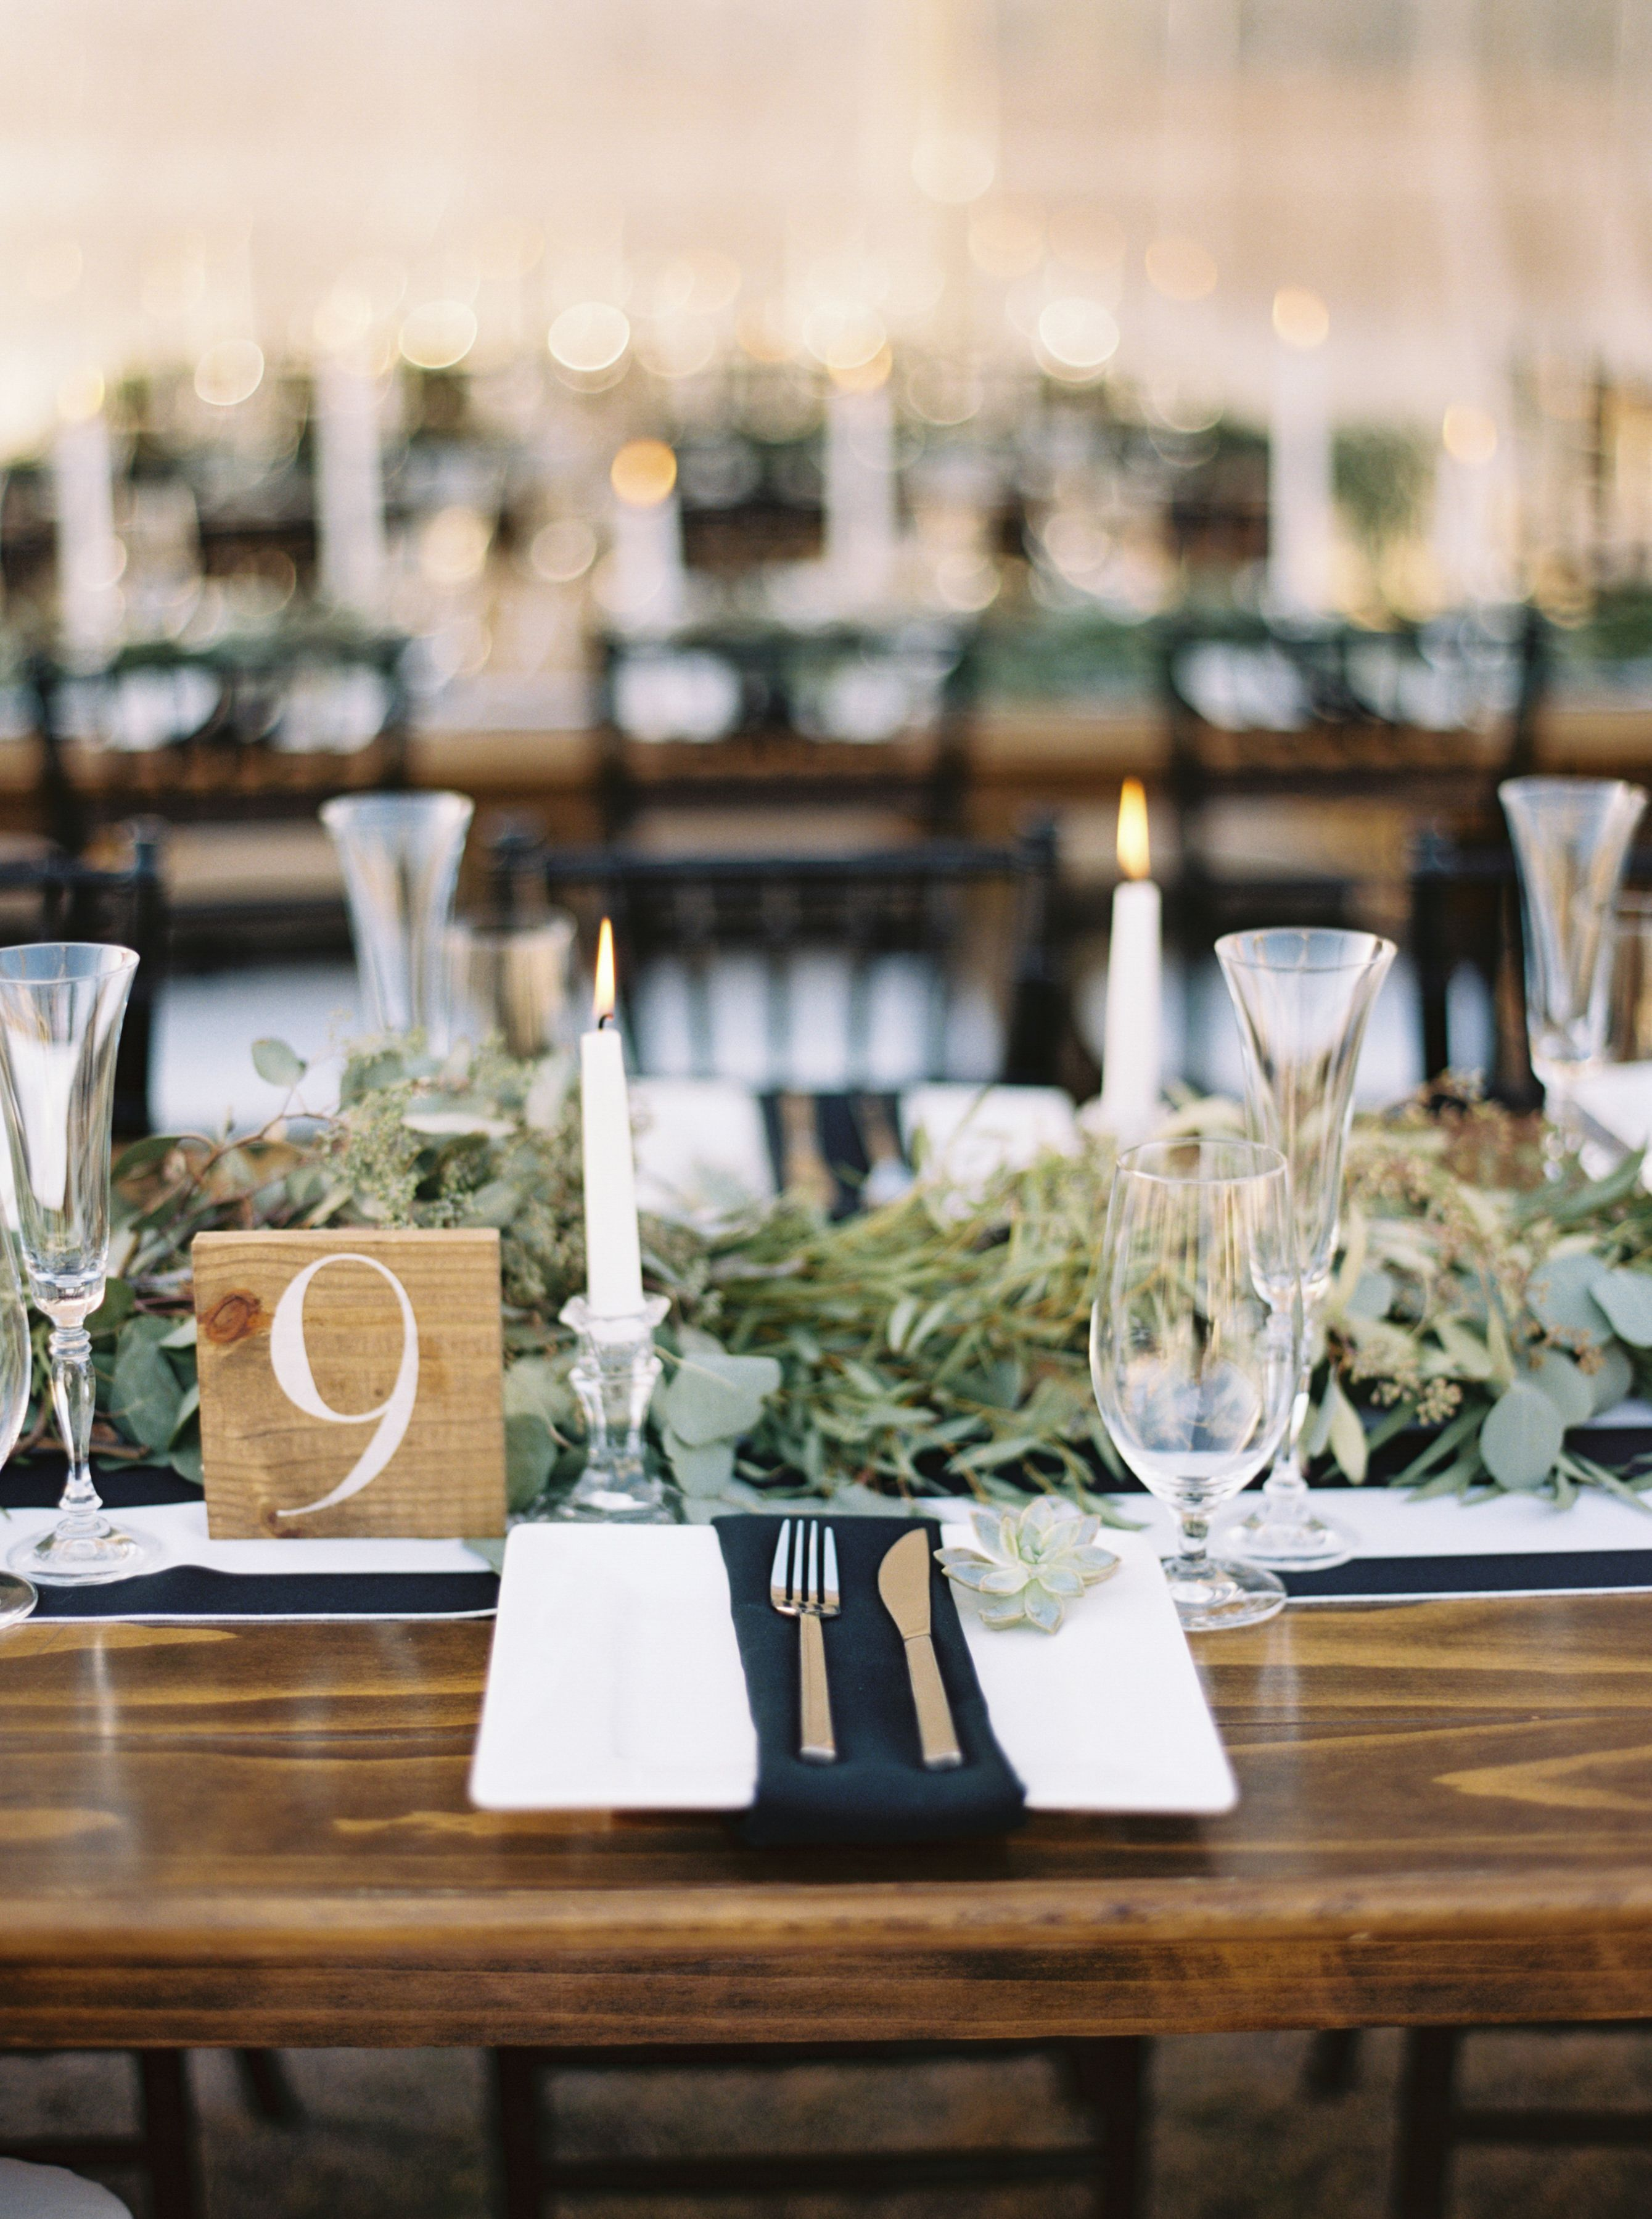 A great rustic table set up for your wedding! Rustic